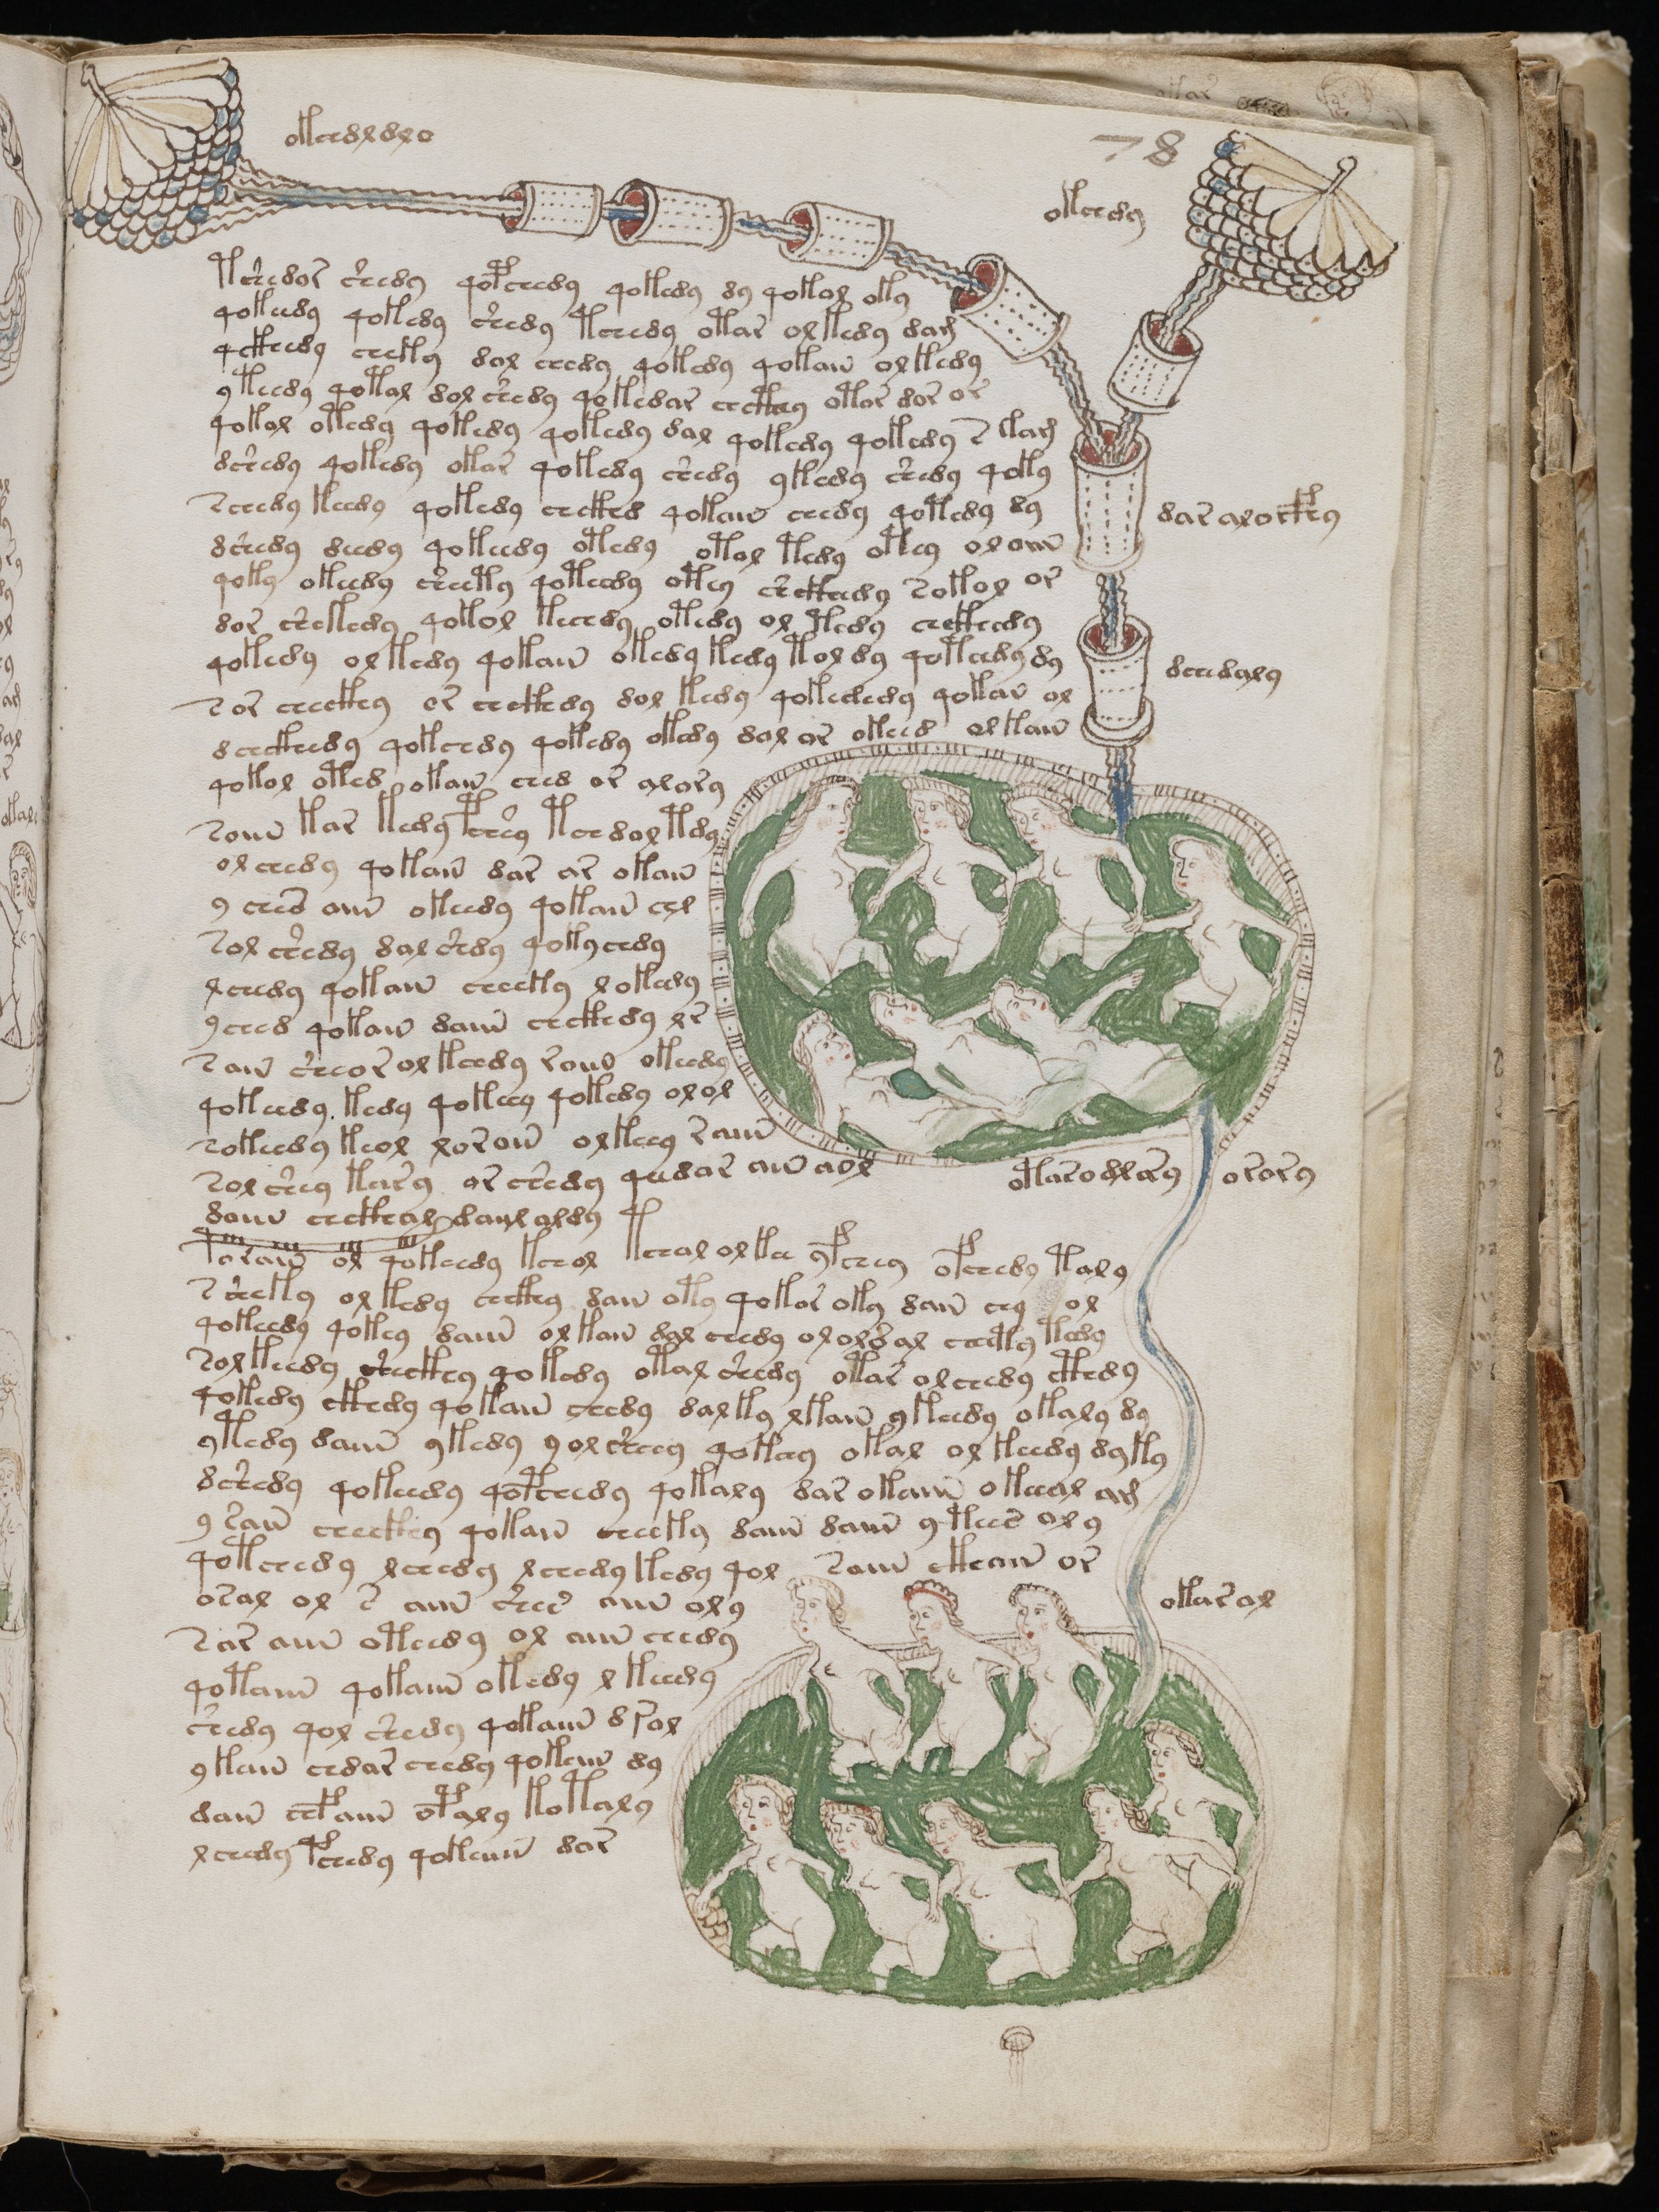 One of many bizarre pages from the Voynich manuscript.